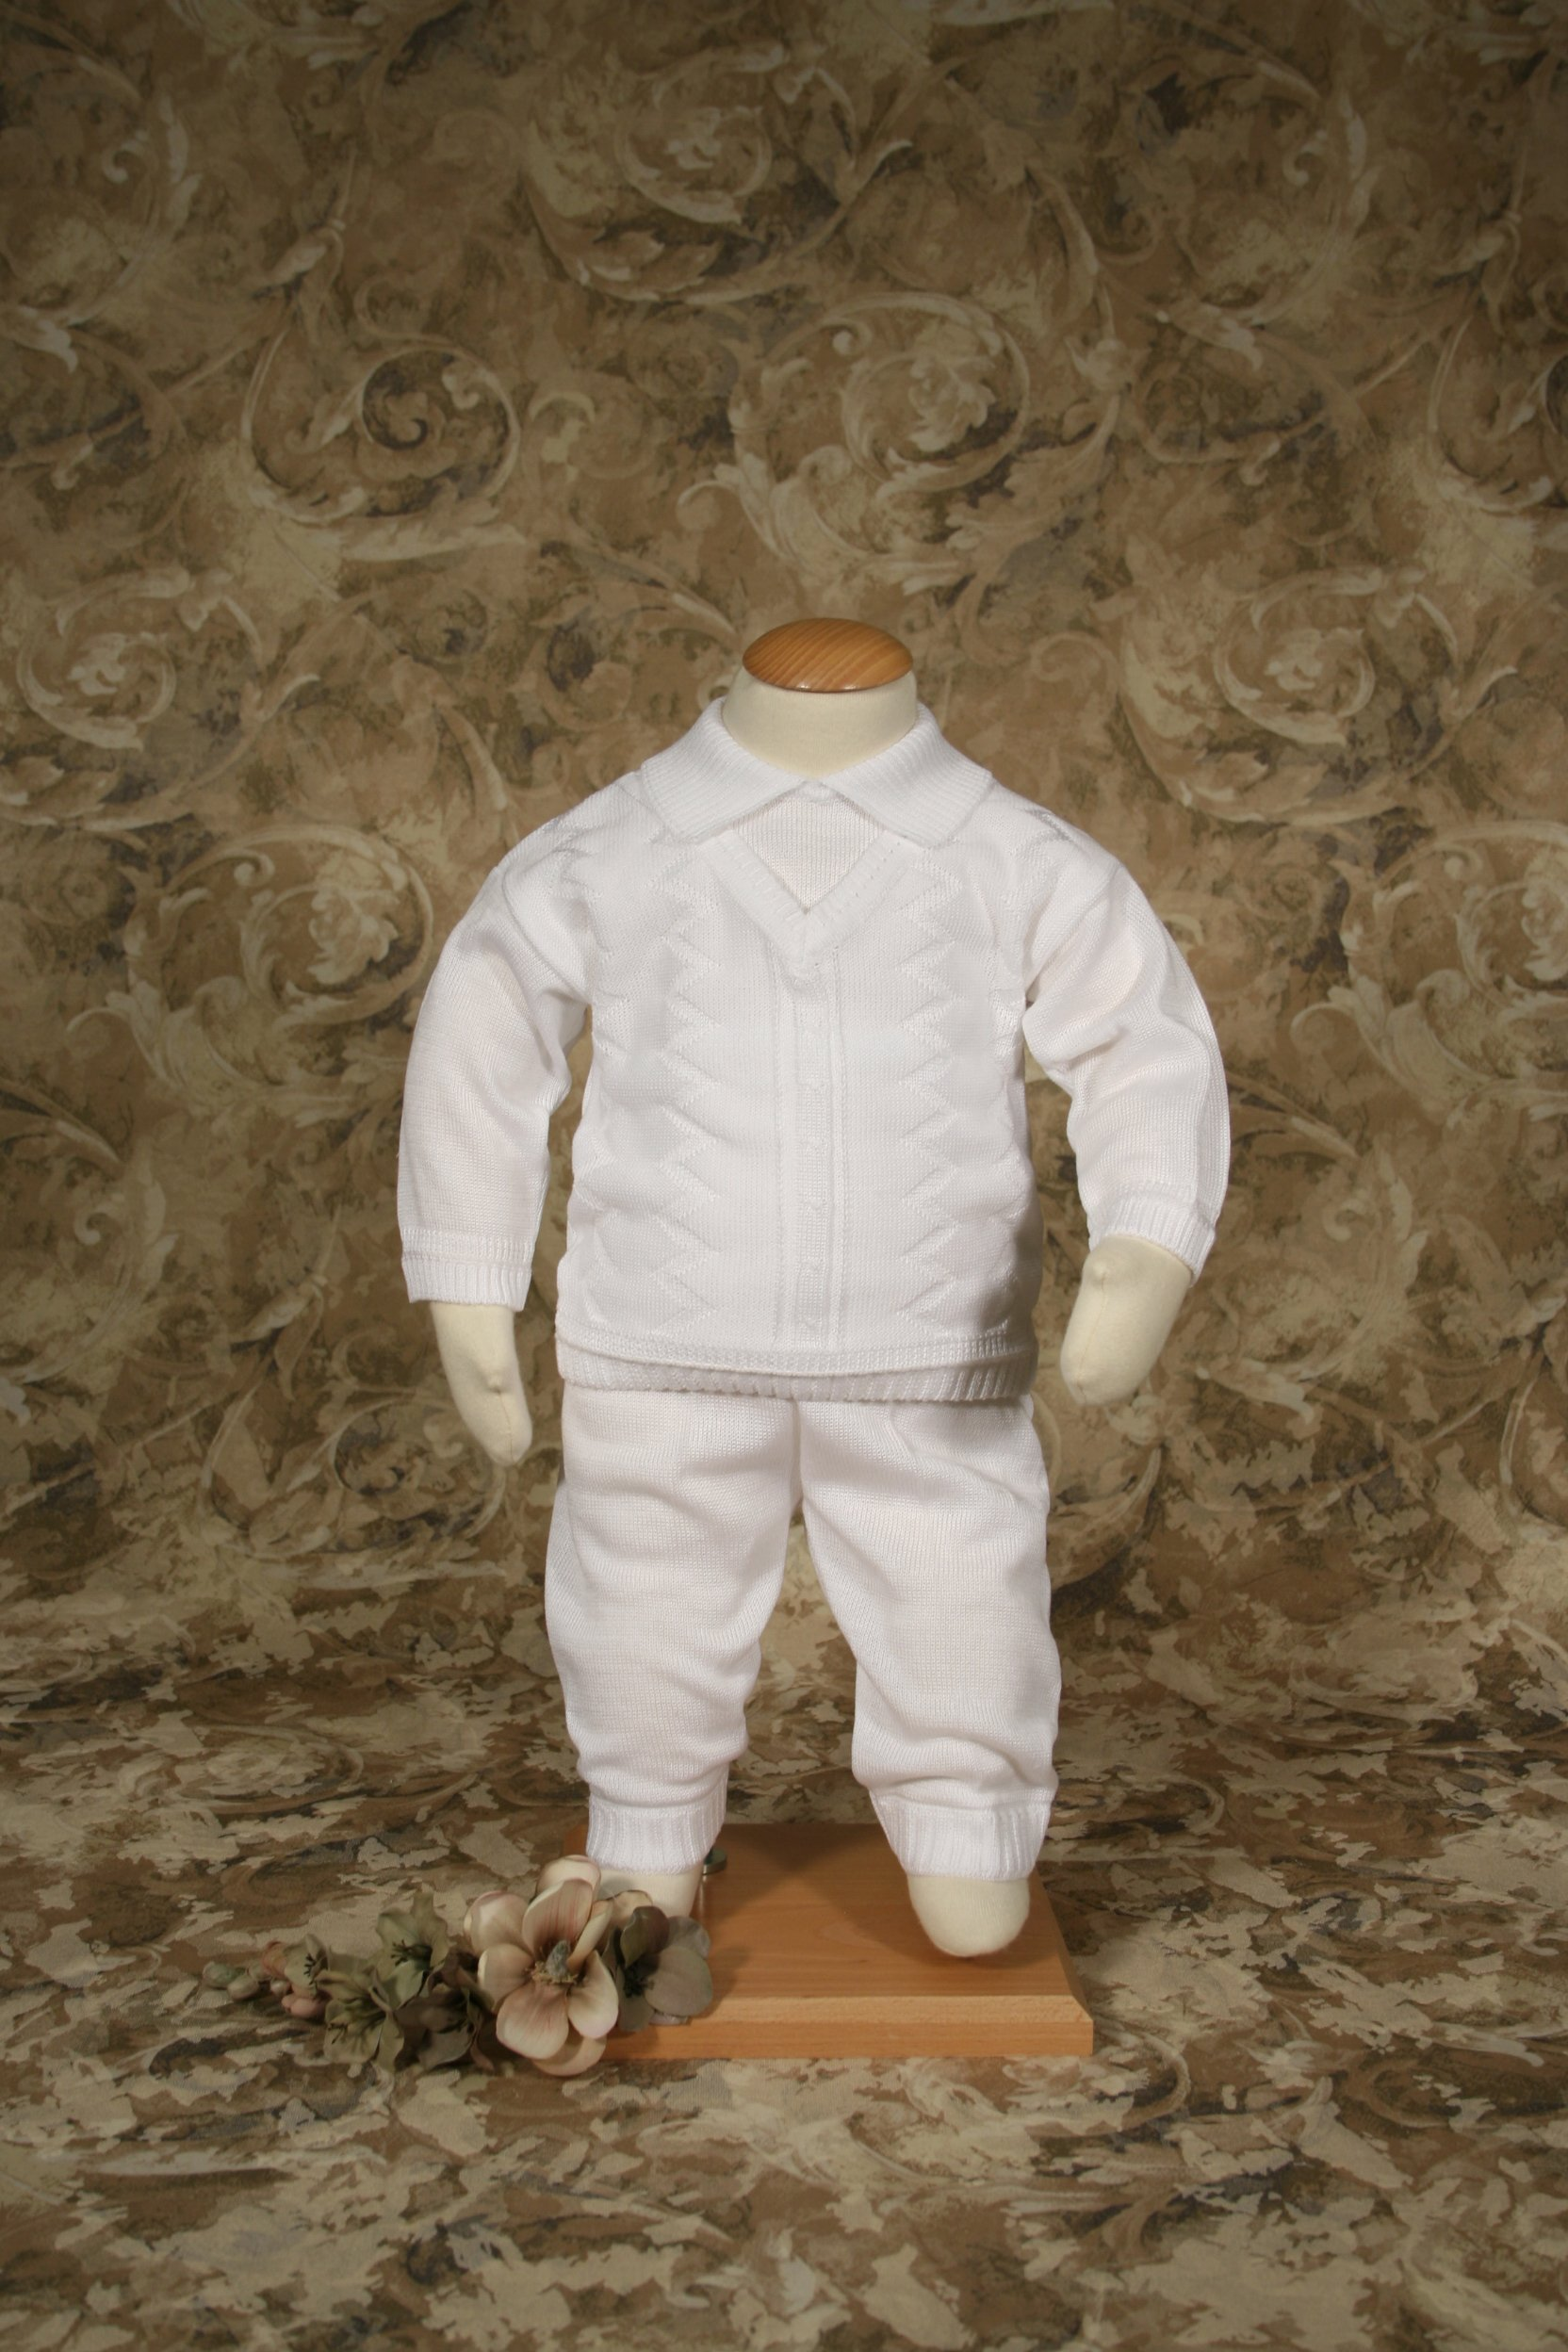 Boys 100% Cotton Knit Two Piece White Christening Baptism Outfit, 03 Month by Little Things Mean A Lot (Image #4)